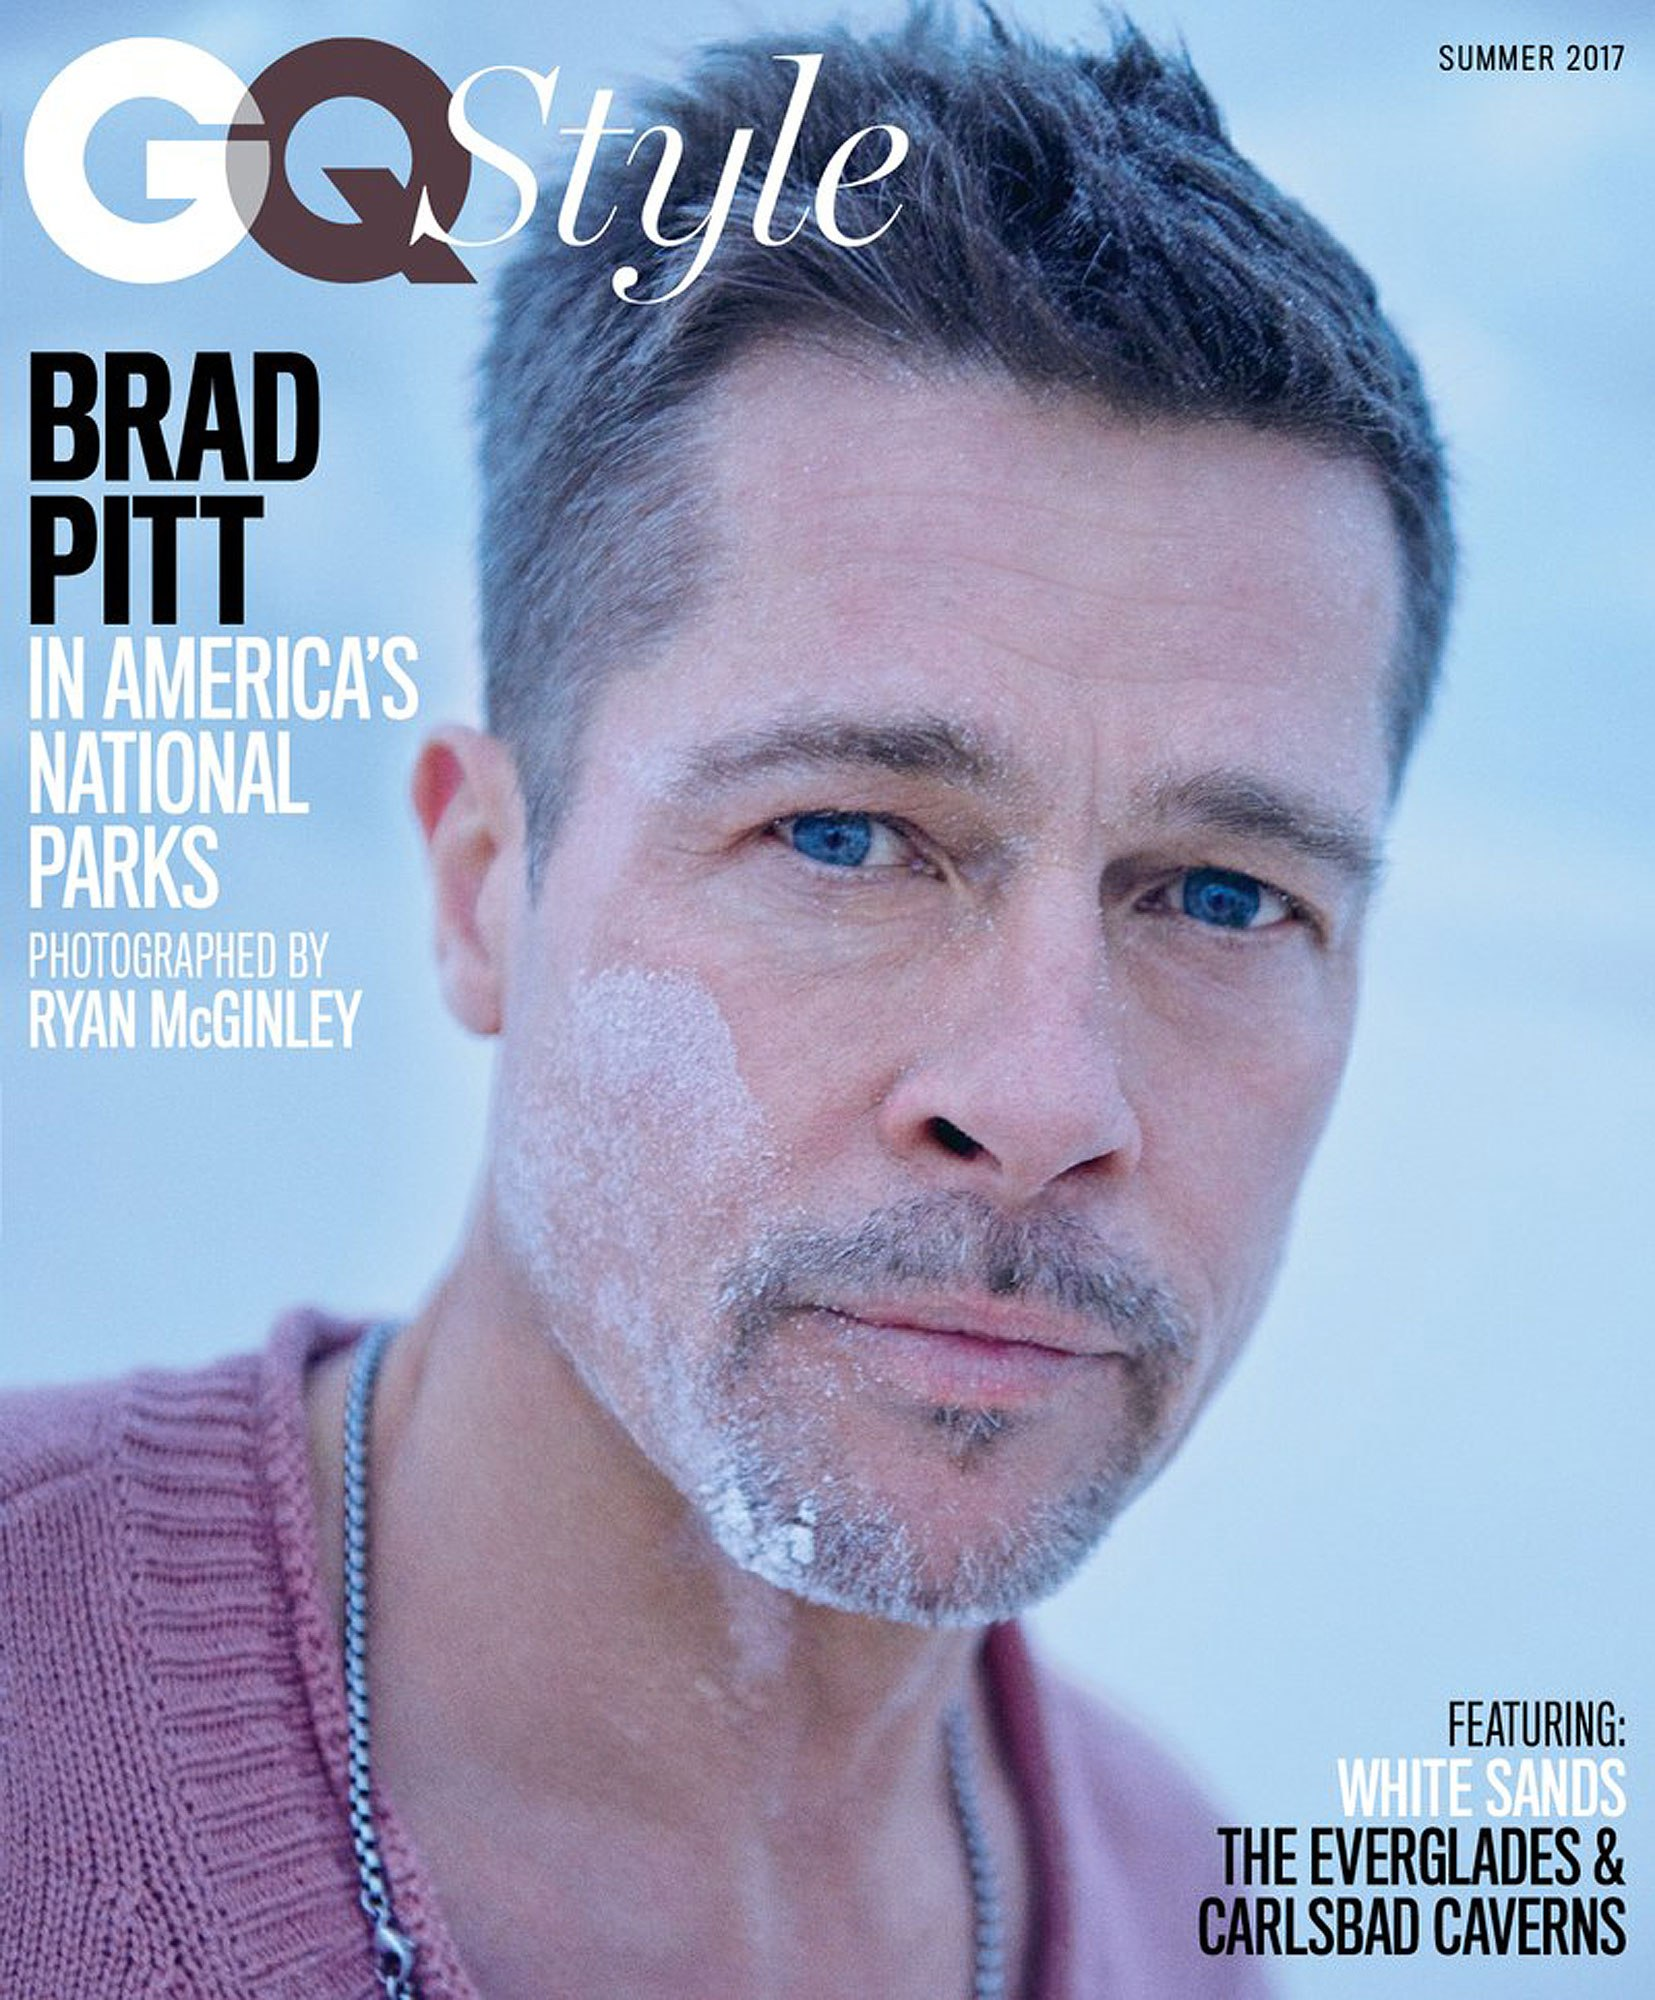 Brad Pitt 'GQ Style's Summer Issue 3 Covers Credit: Ryan McGinley exclusively for GQ Style